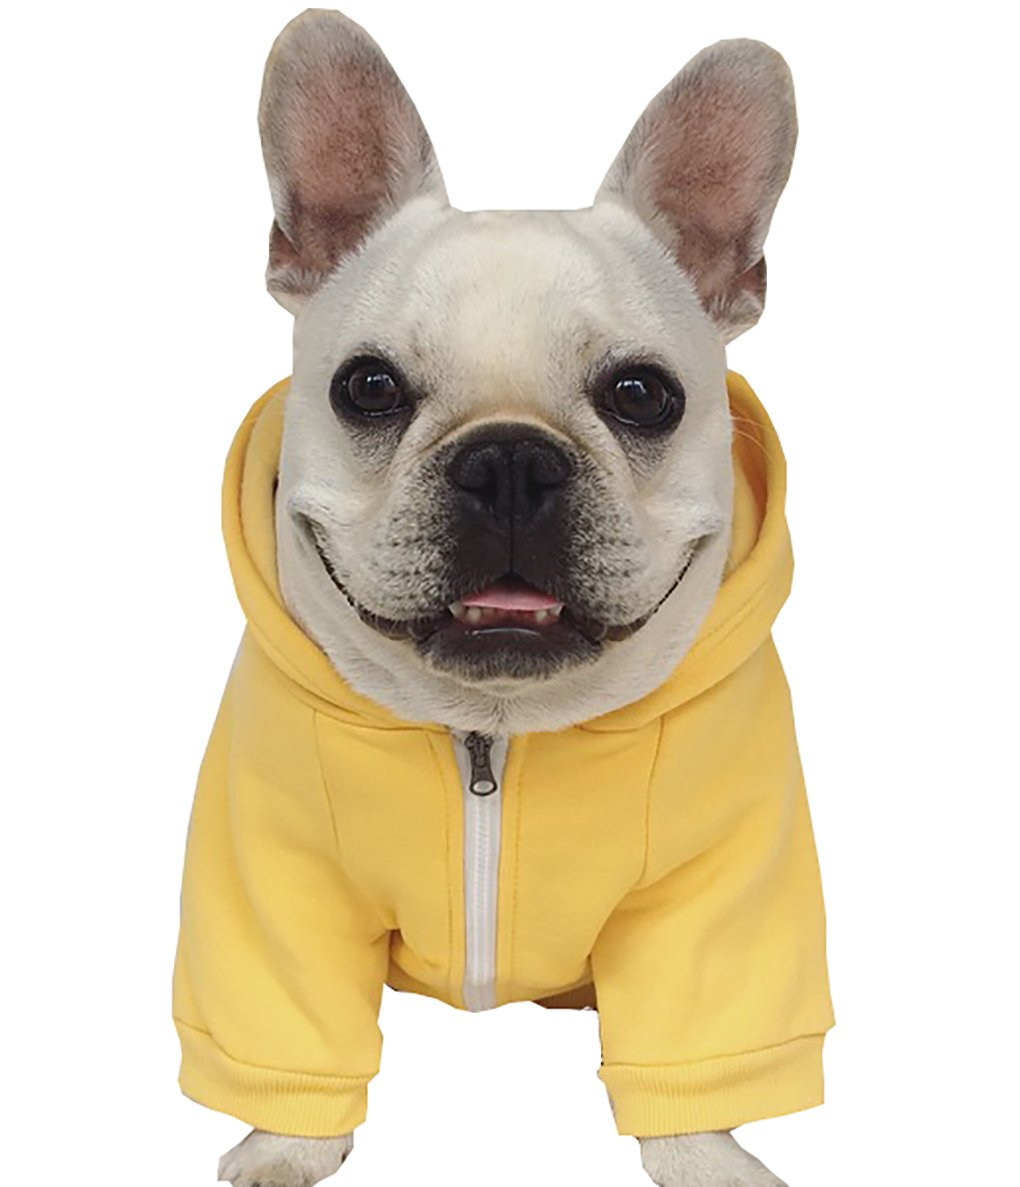 Moolecole Zip-up Hoodie Pet Costume Dog Hoodies Clothes Outfit Funny Pet Hooded Apperal for French Bulldog and Pug Yellow 2XL